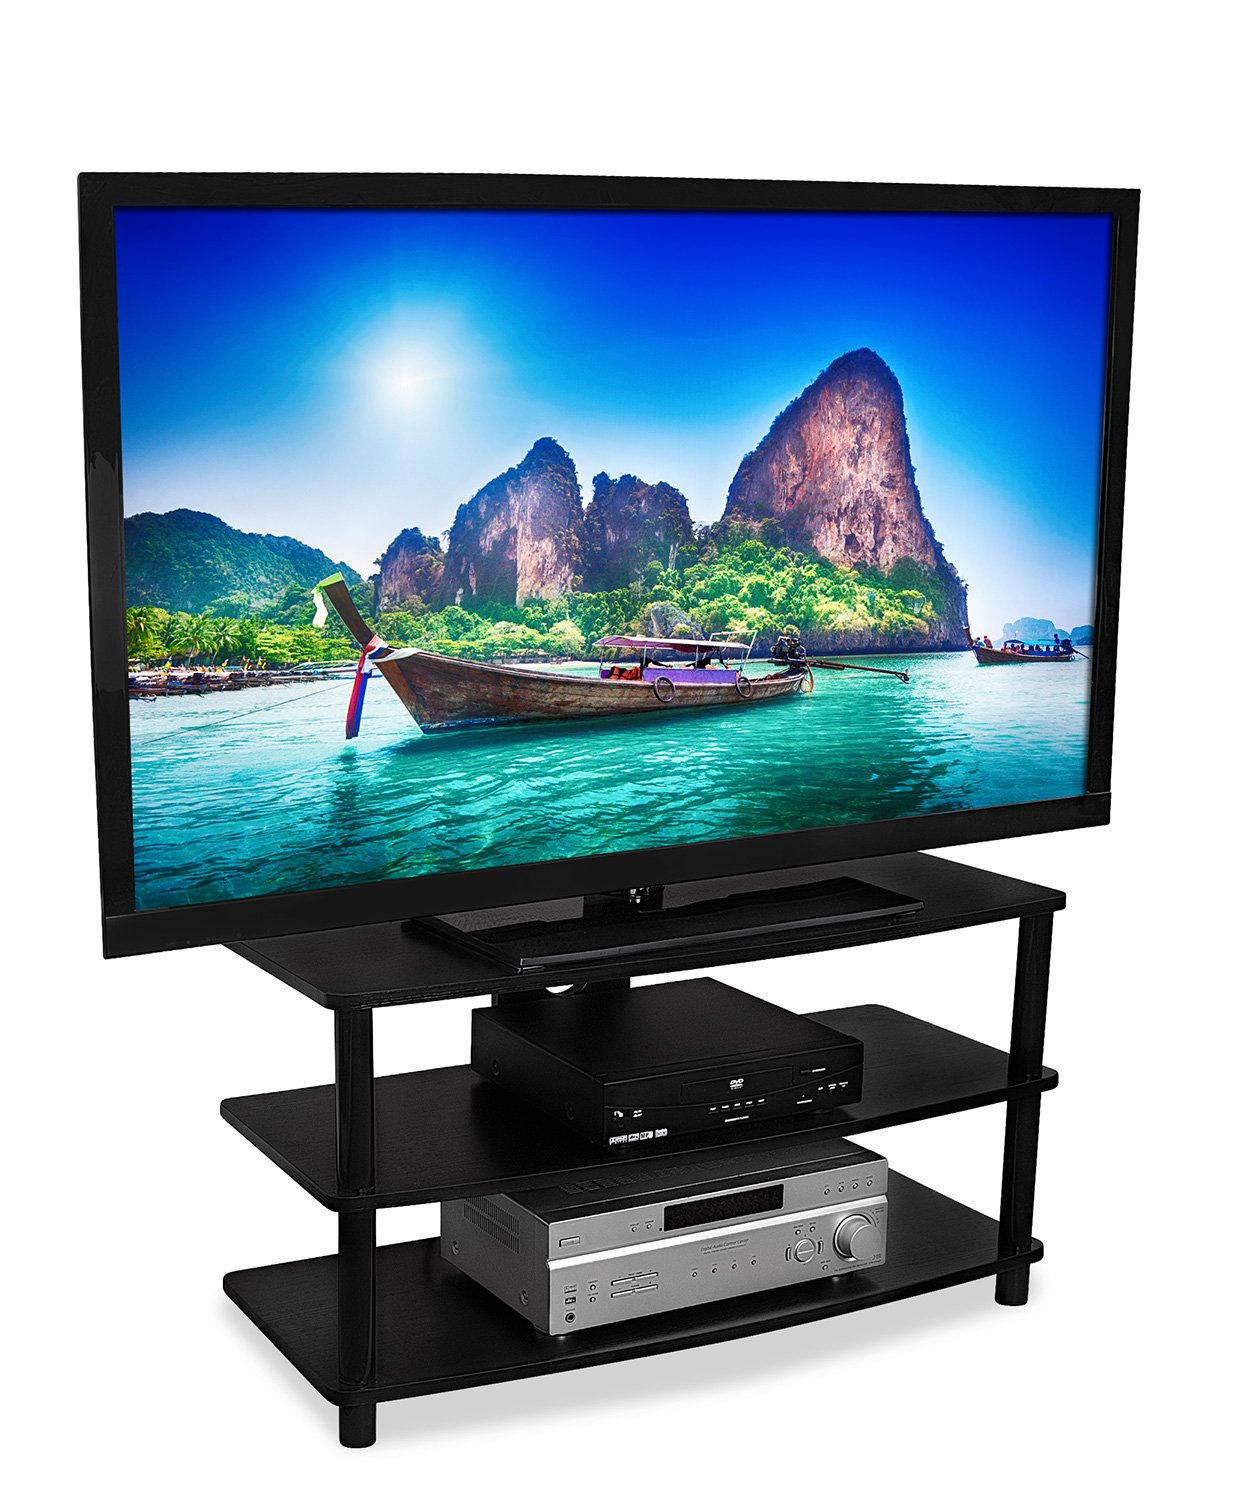 Mount-It! TV Stand Entertainment Center For 32 37 42 47 50 Inch Flat Screen Televisions, AV Component Console With Three Shelves, 88 Lbs Capacity, Black (MI-868L)